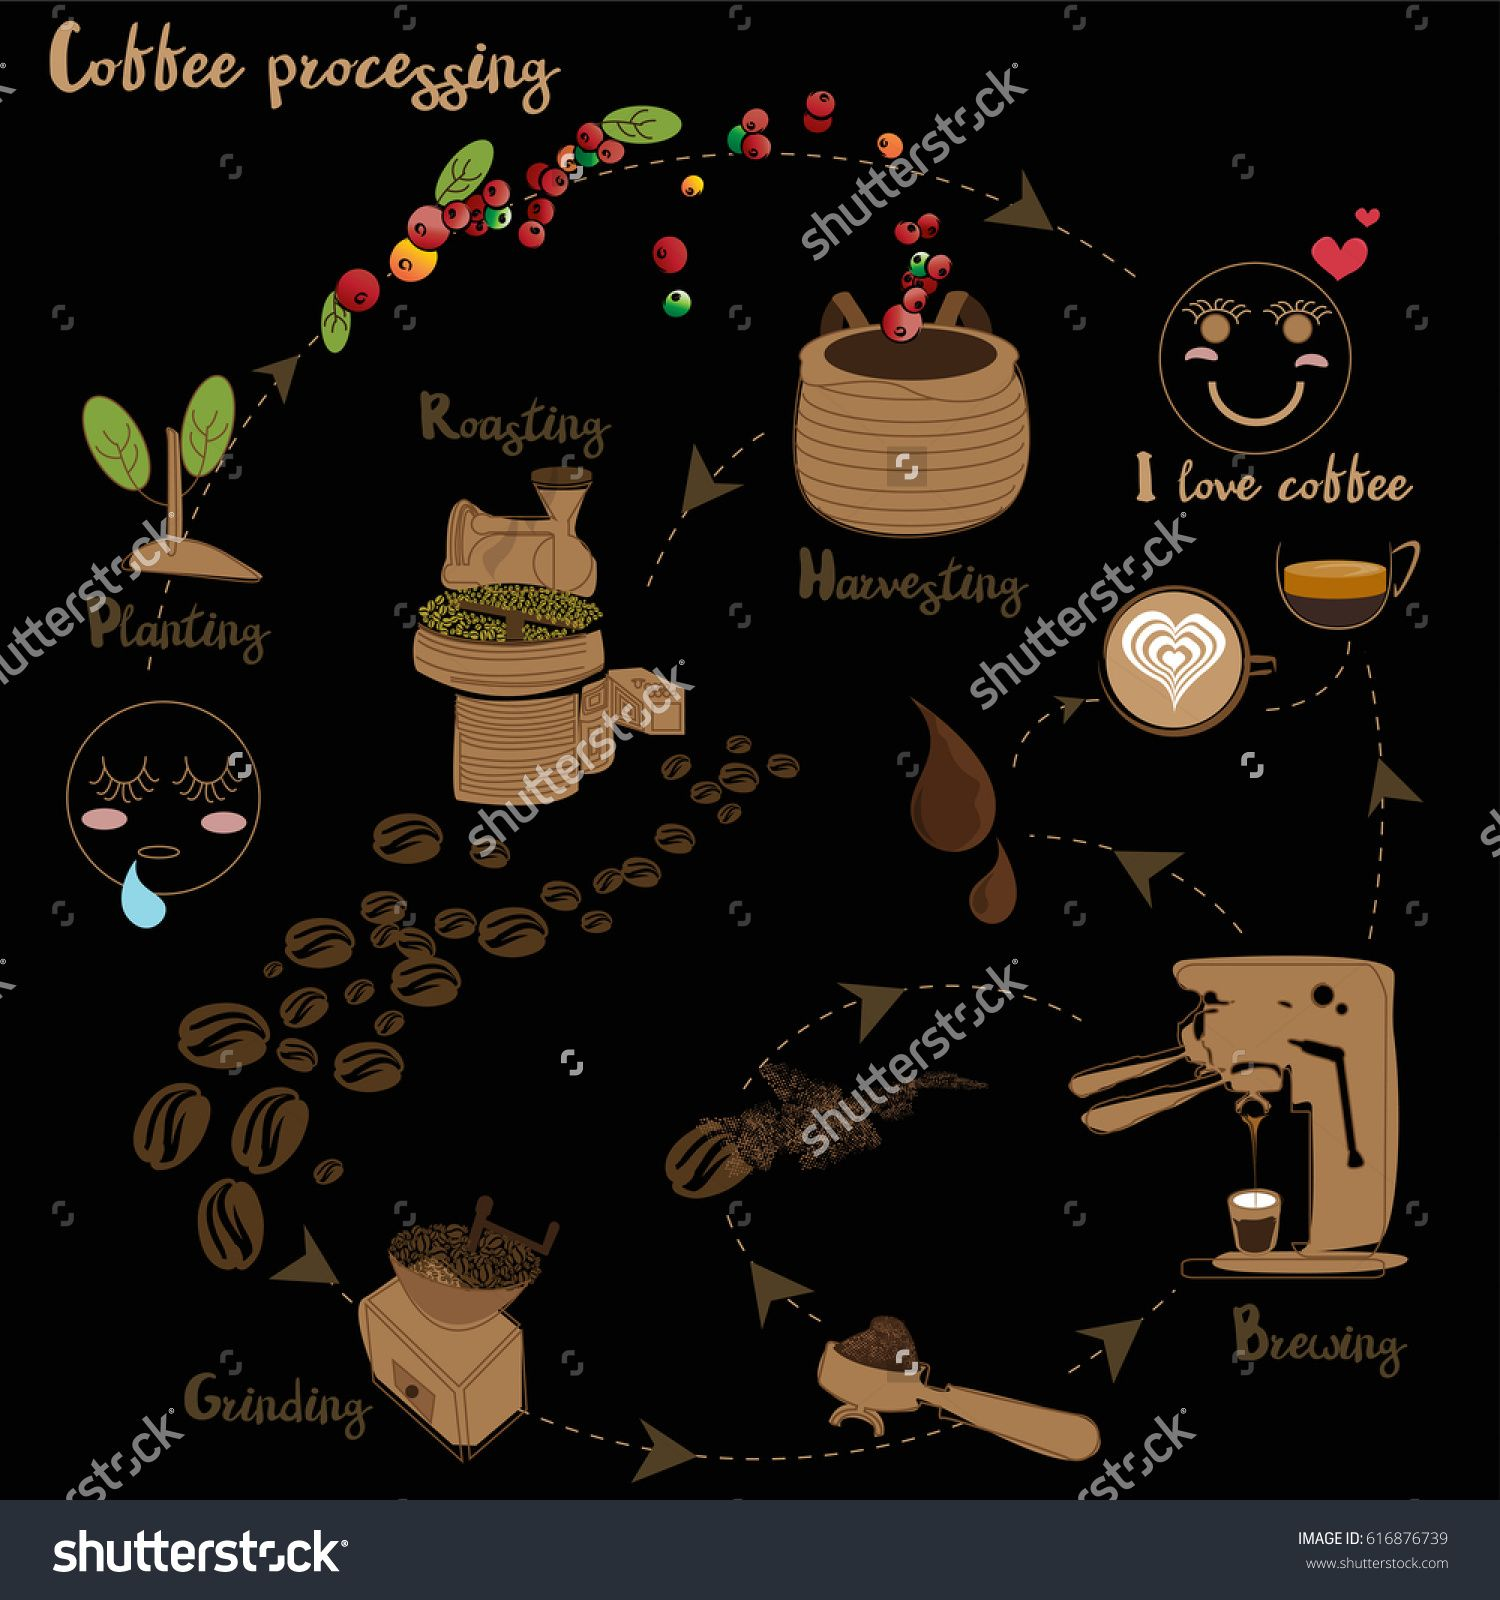 coffee processing step by step Инфографика, Кофе